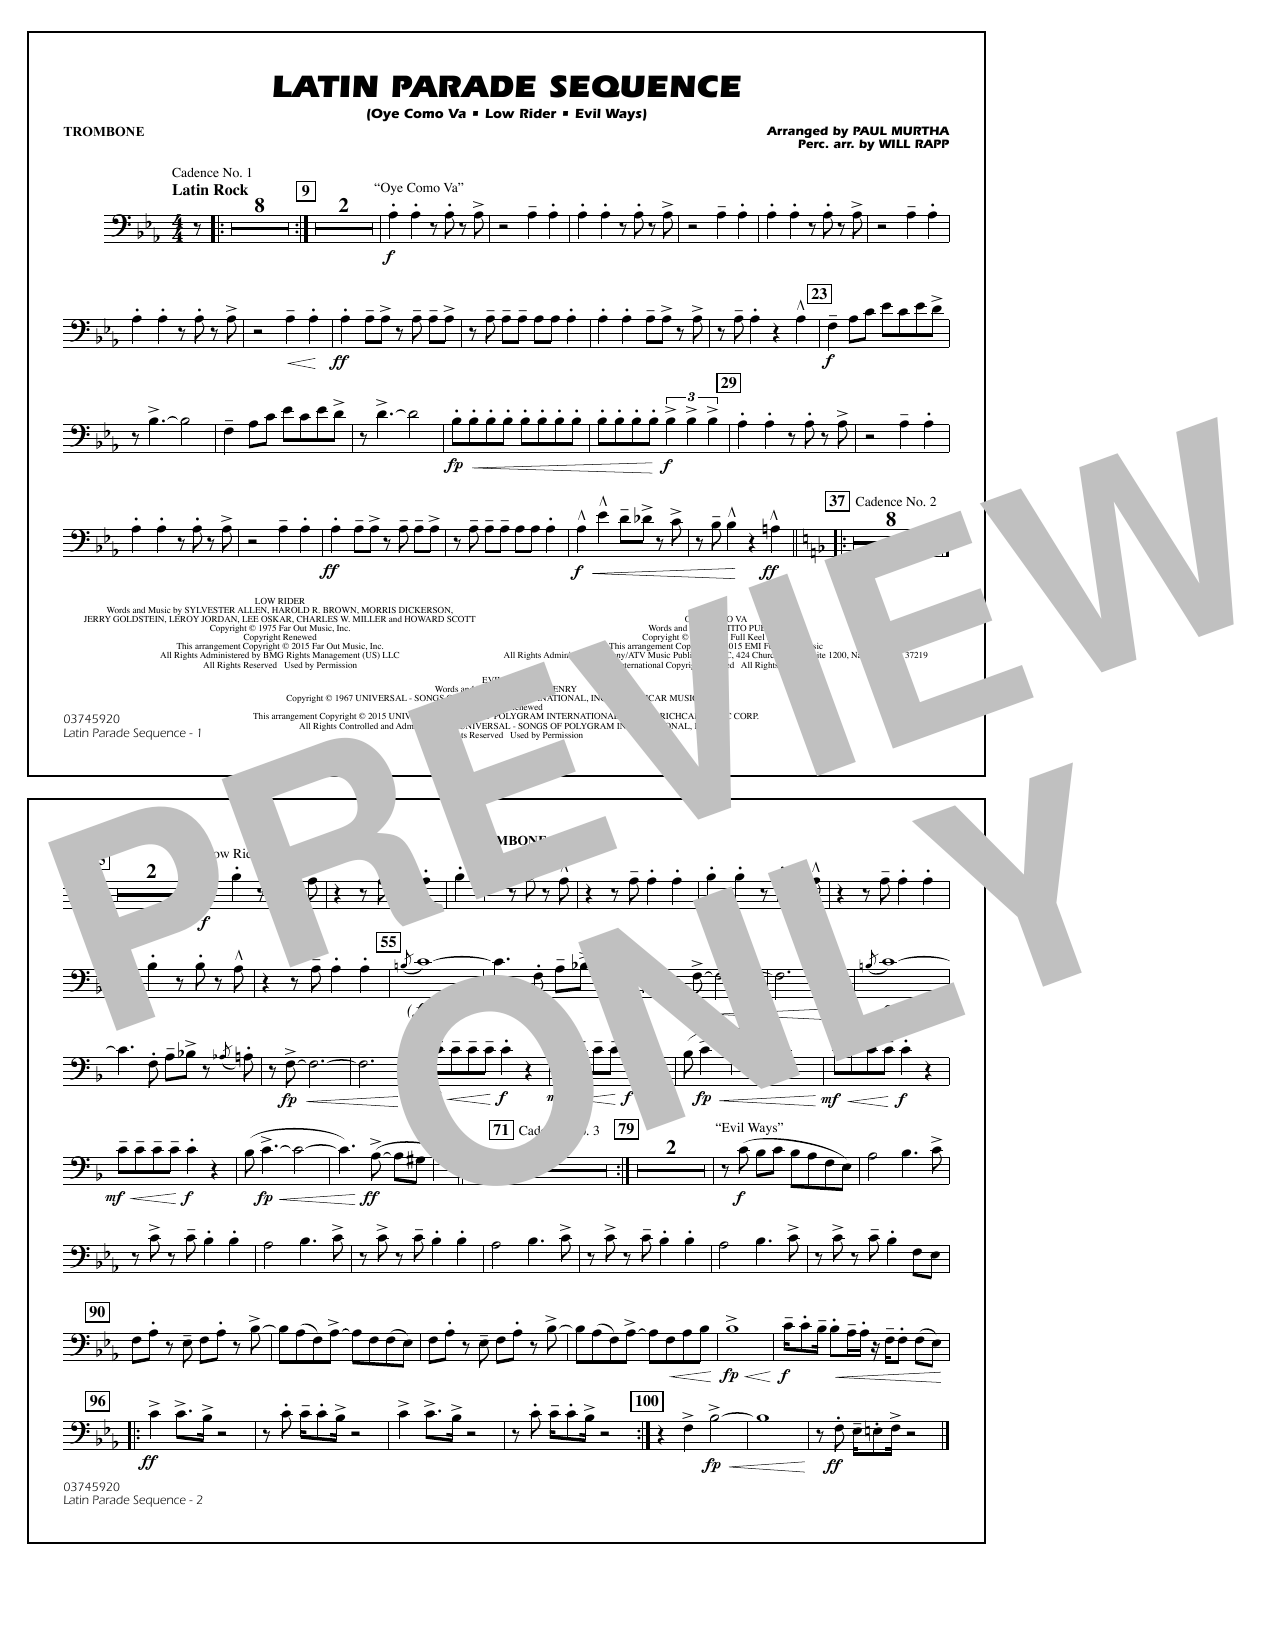 Latin Parade Sequence - Trombone (Marching Band)